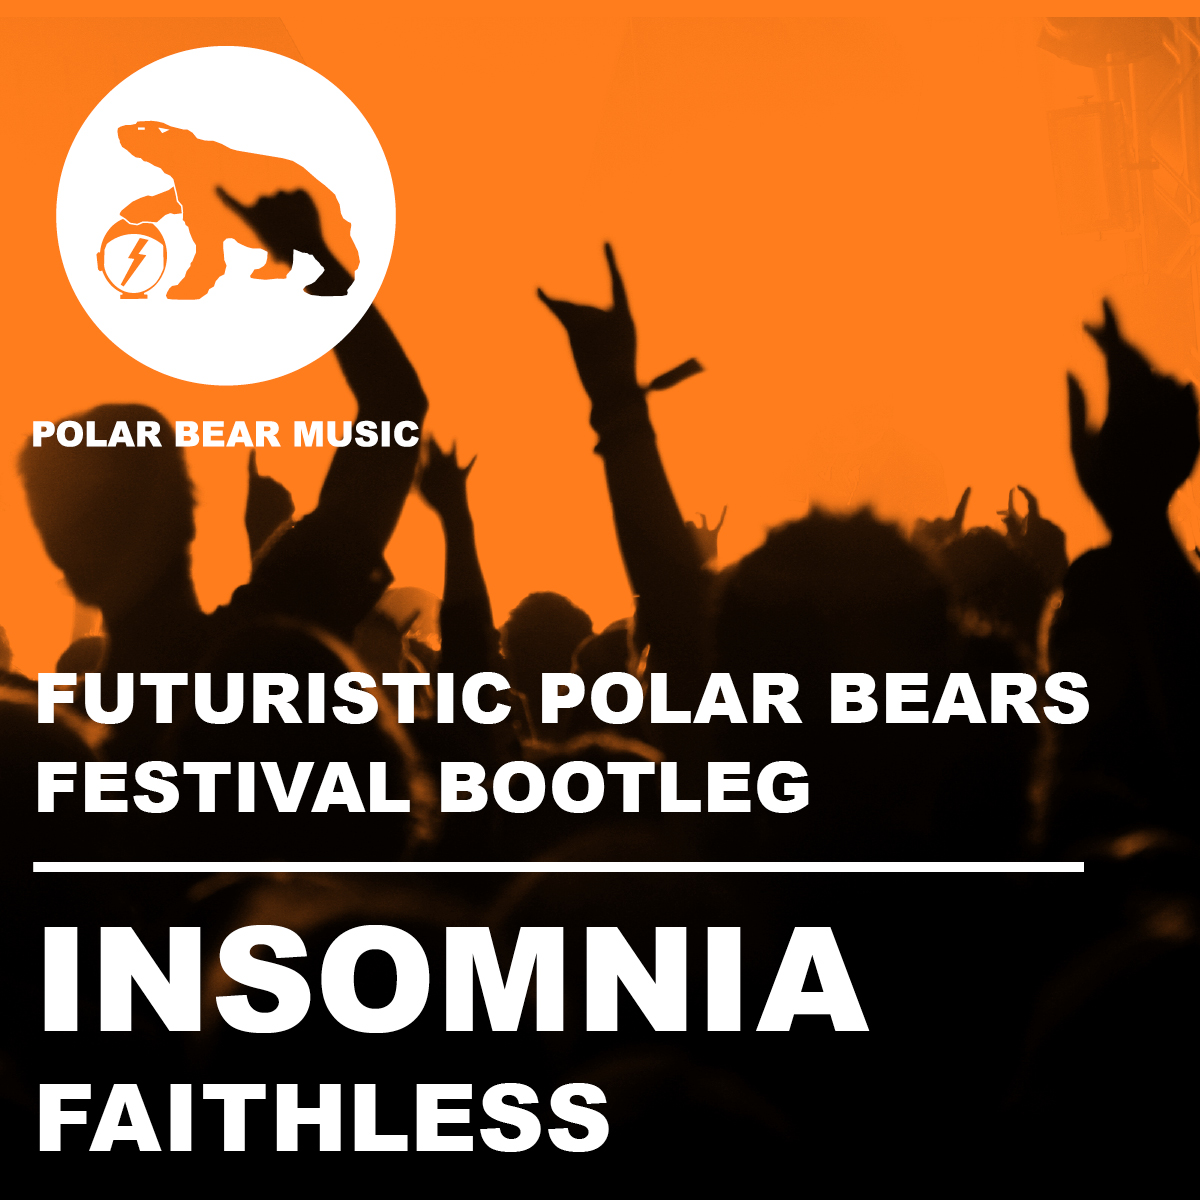 Faithless insomnia futuristic polar bears 2012 festival for Insomnia house music